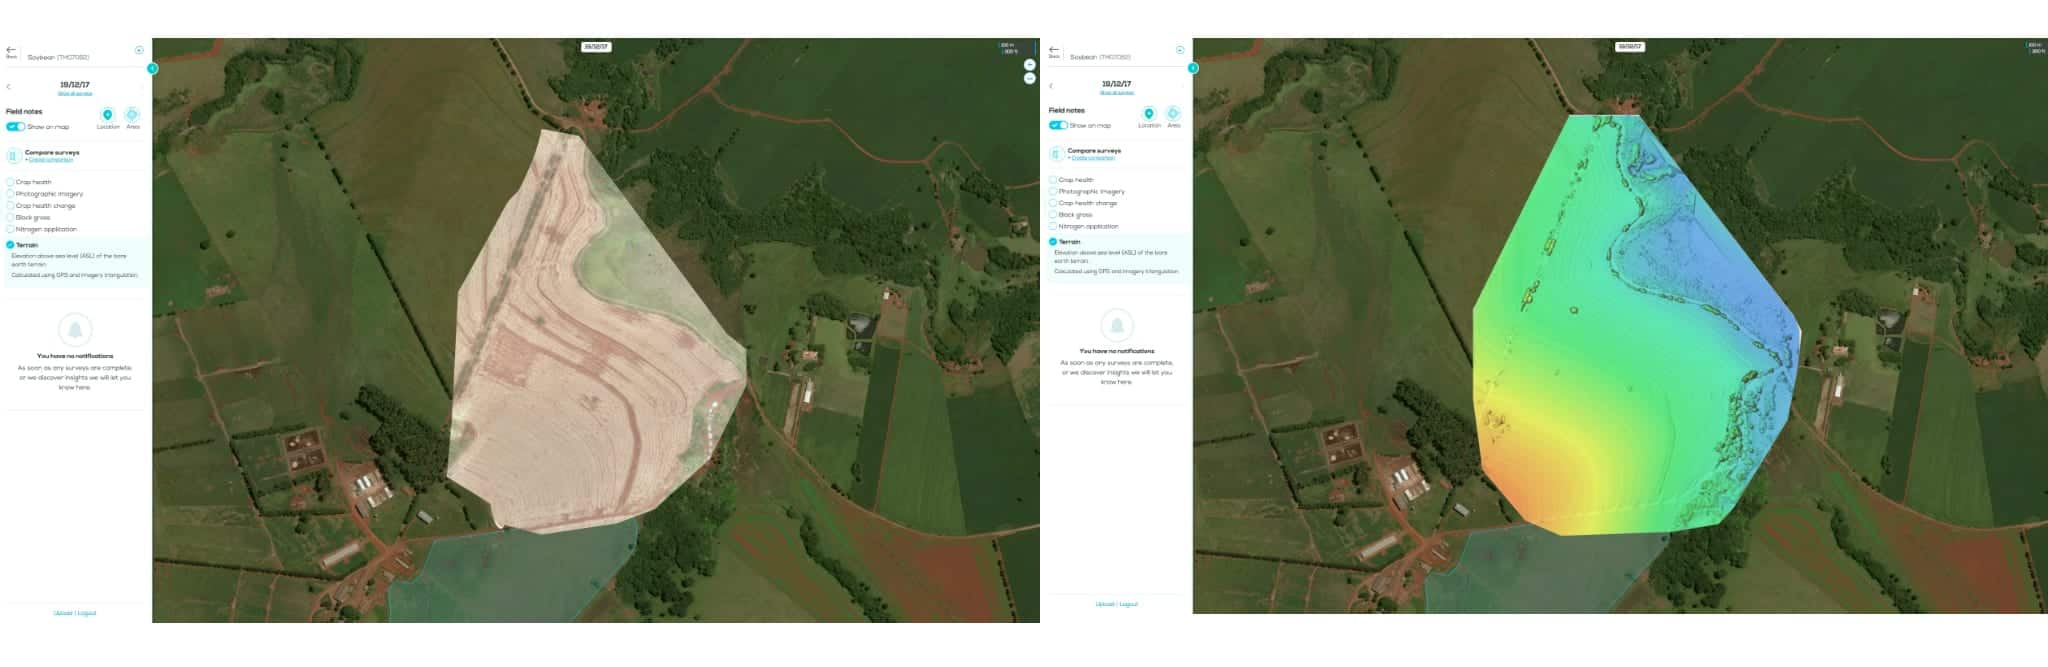 Pix4Dengine - UAV Photogrammetry Data Processing